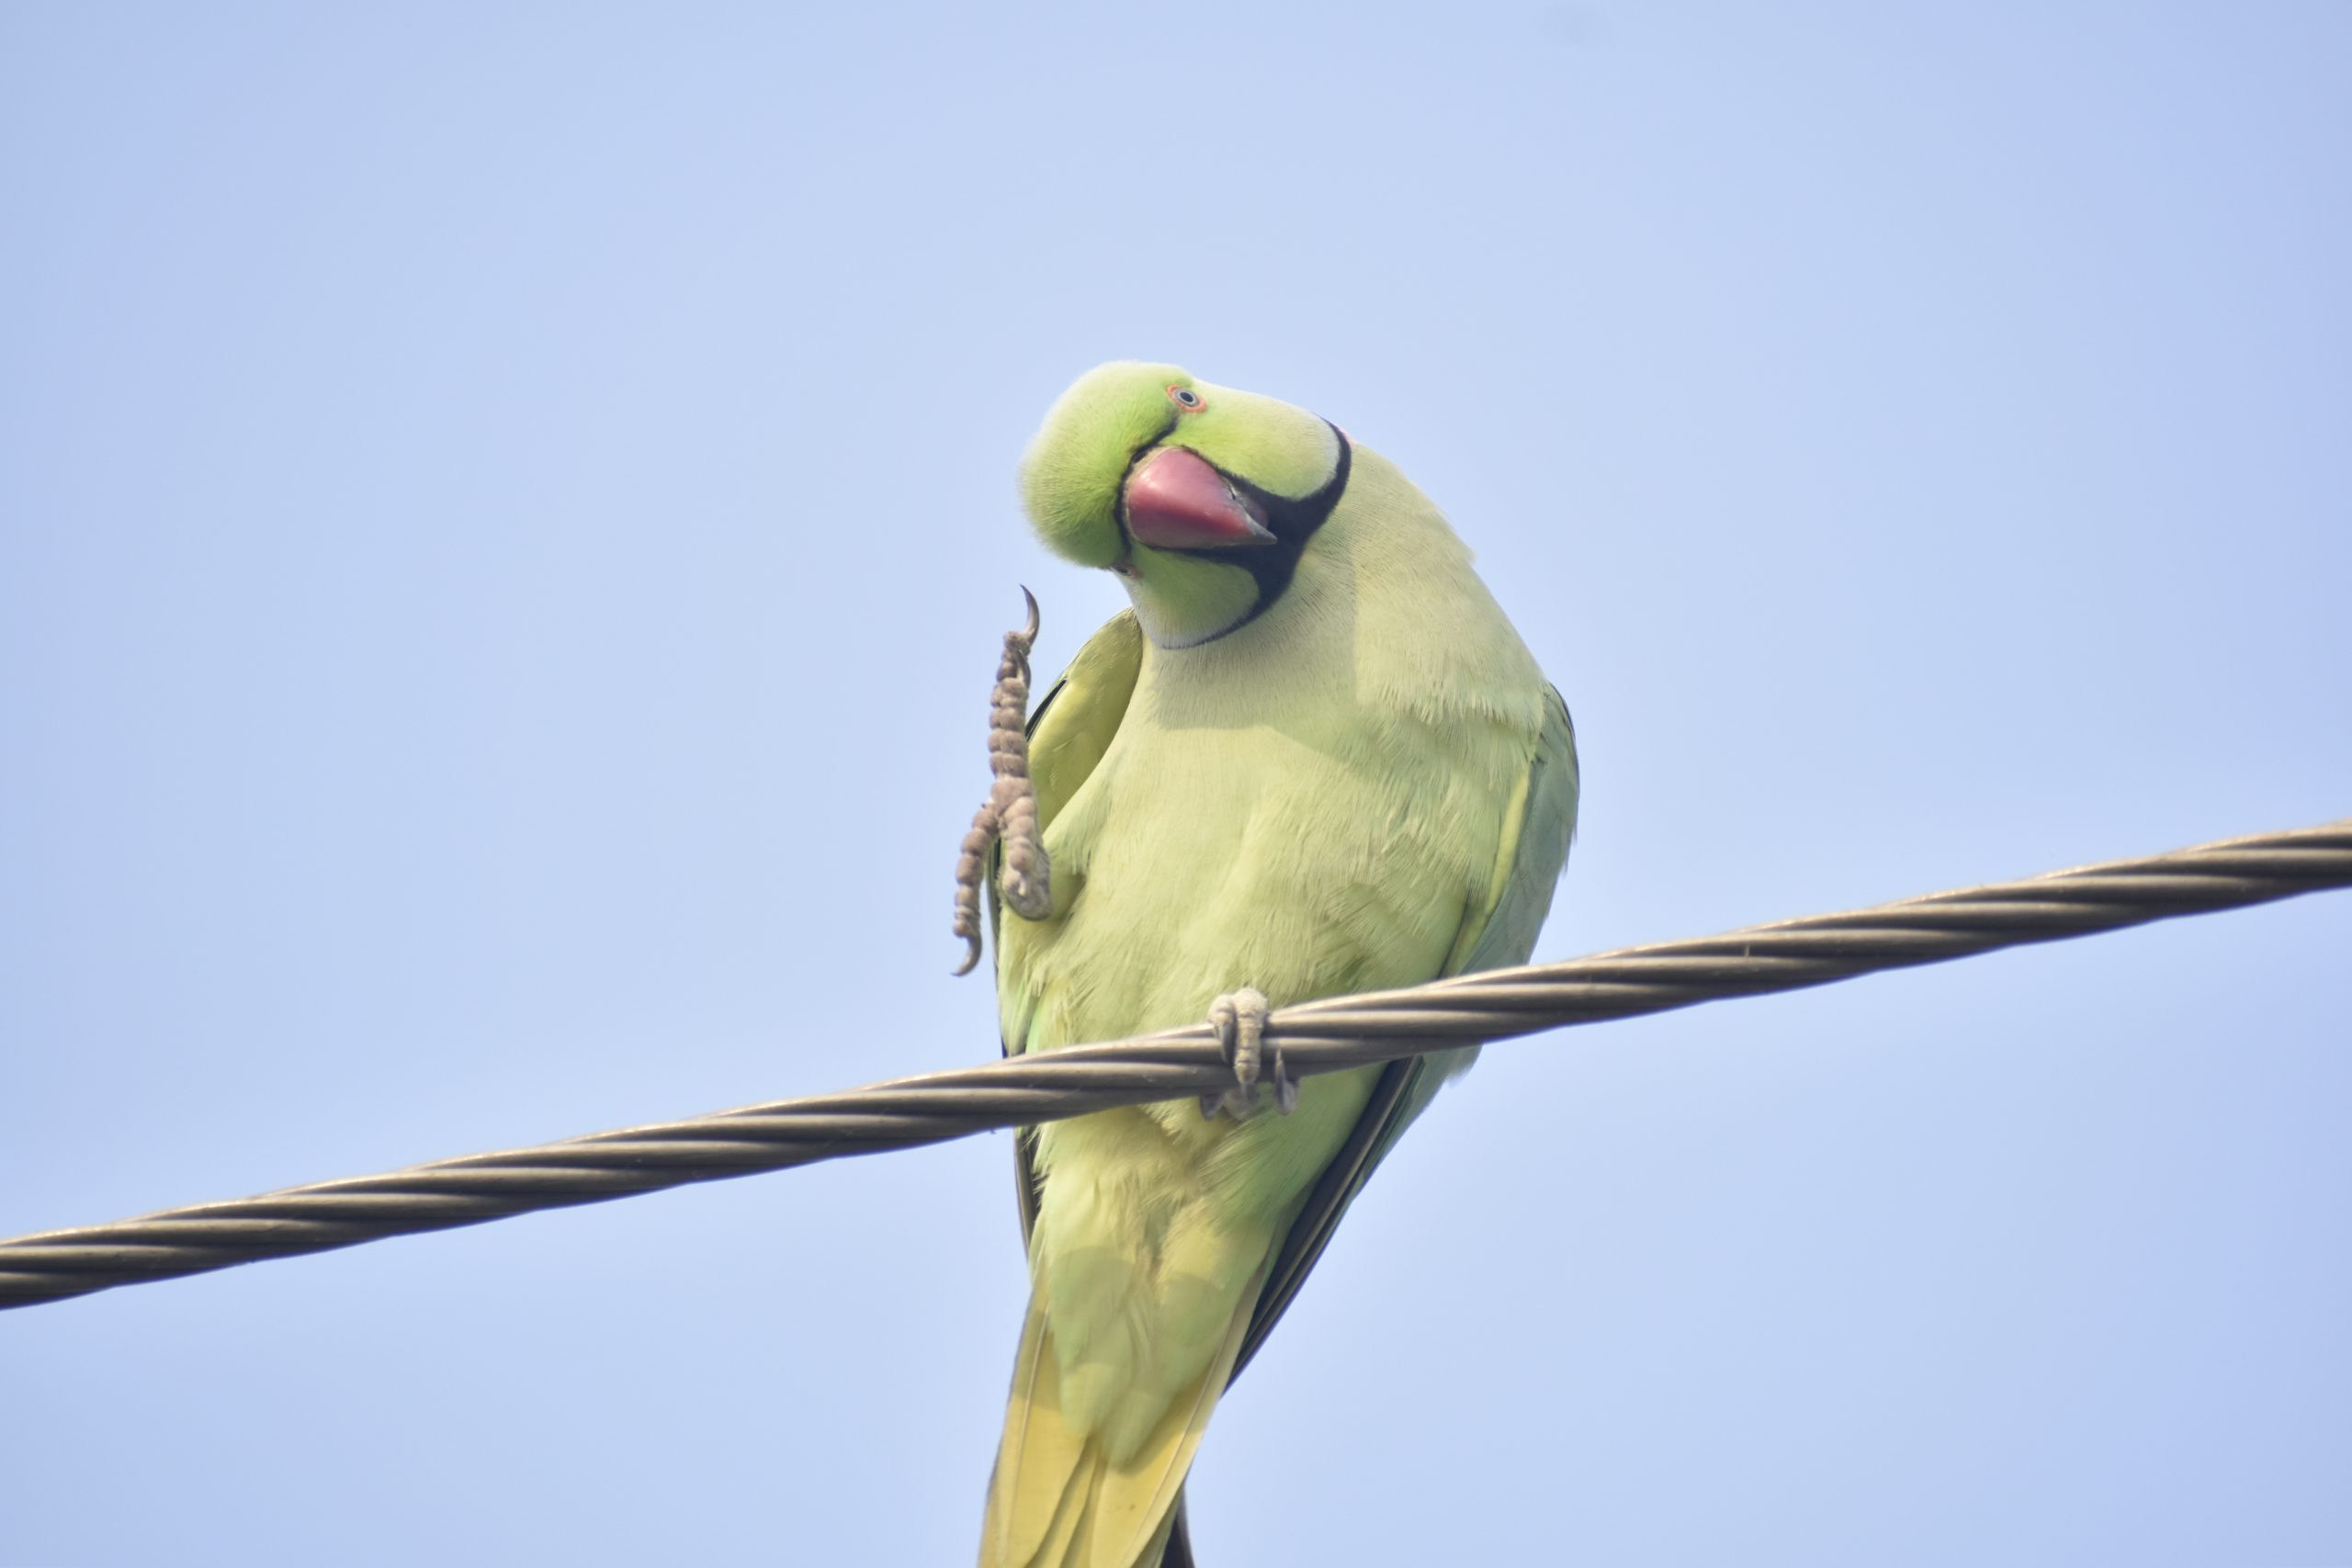 A parrot on an electric wire